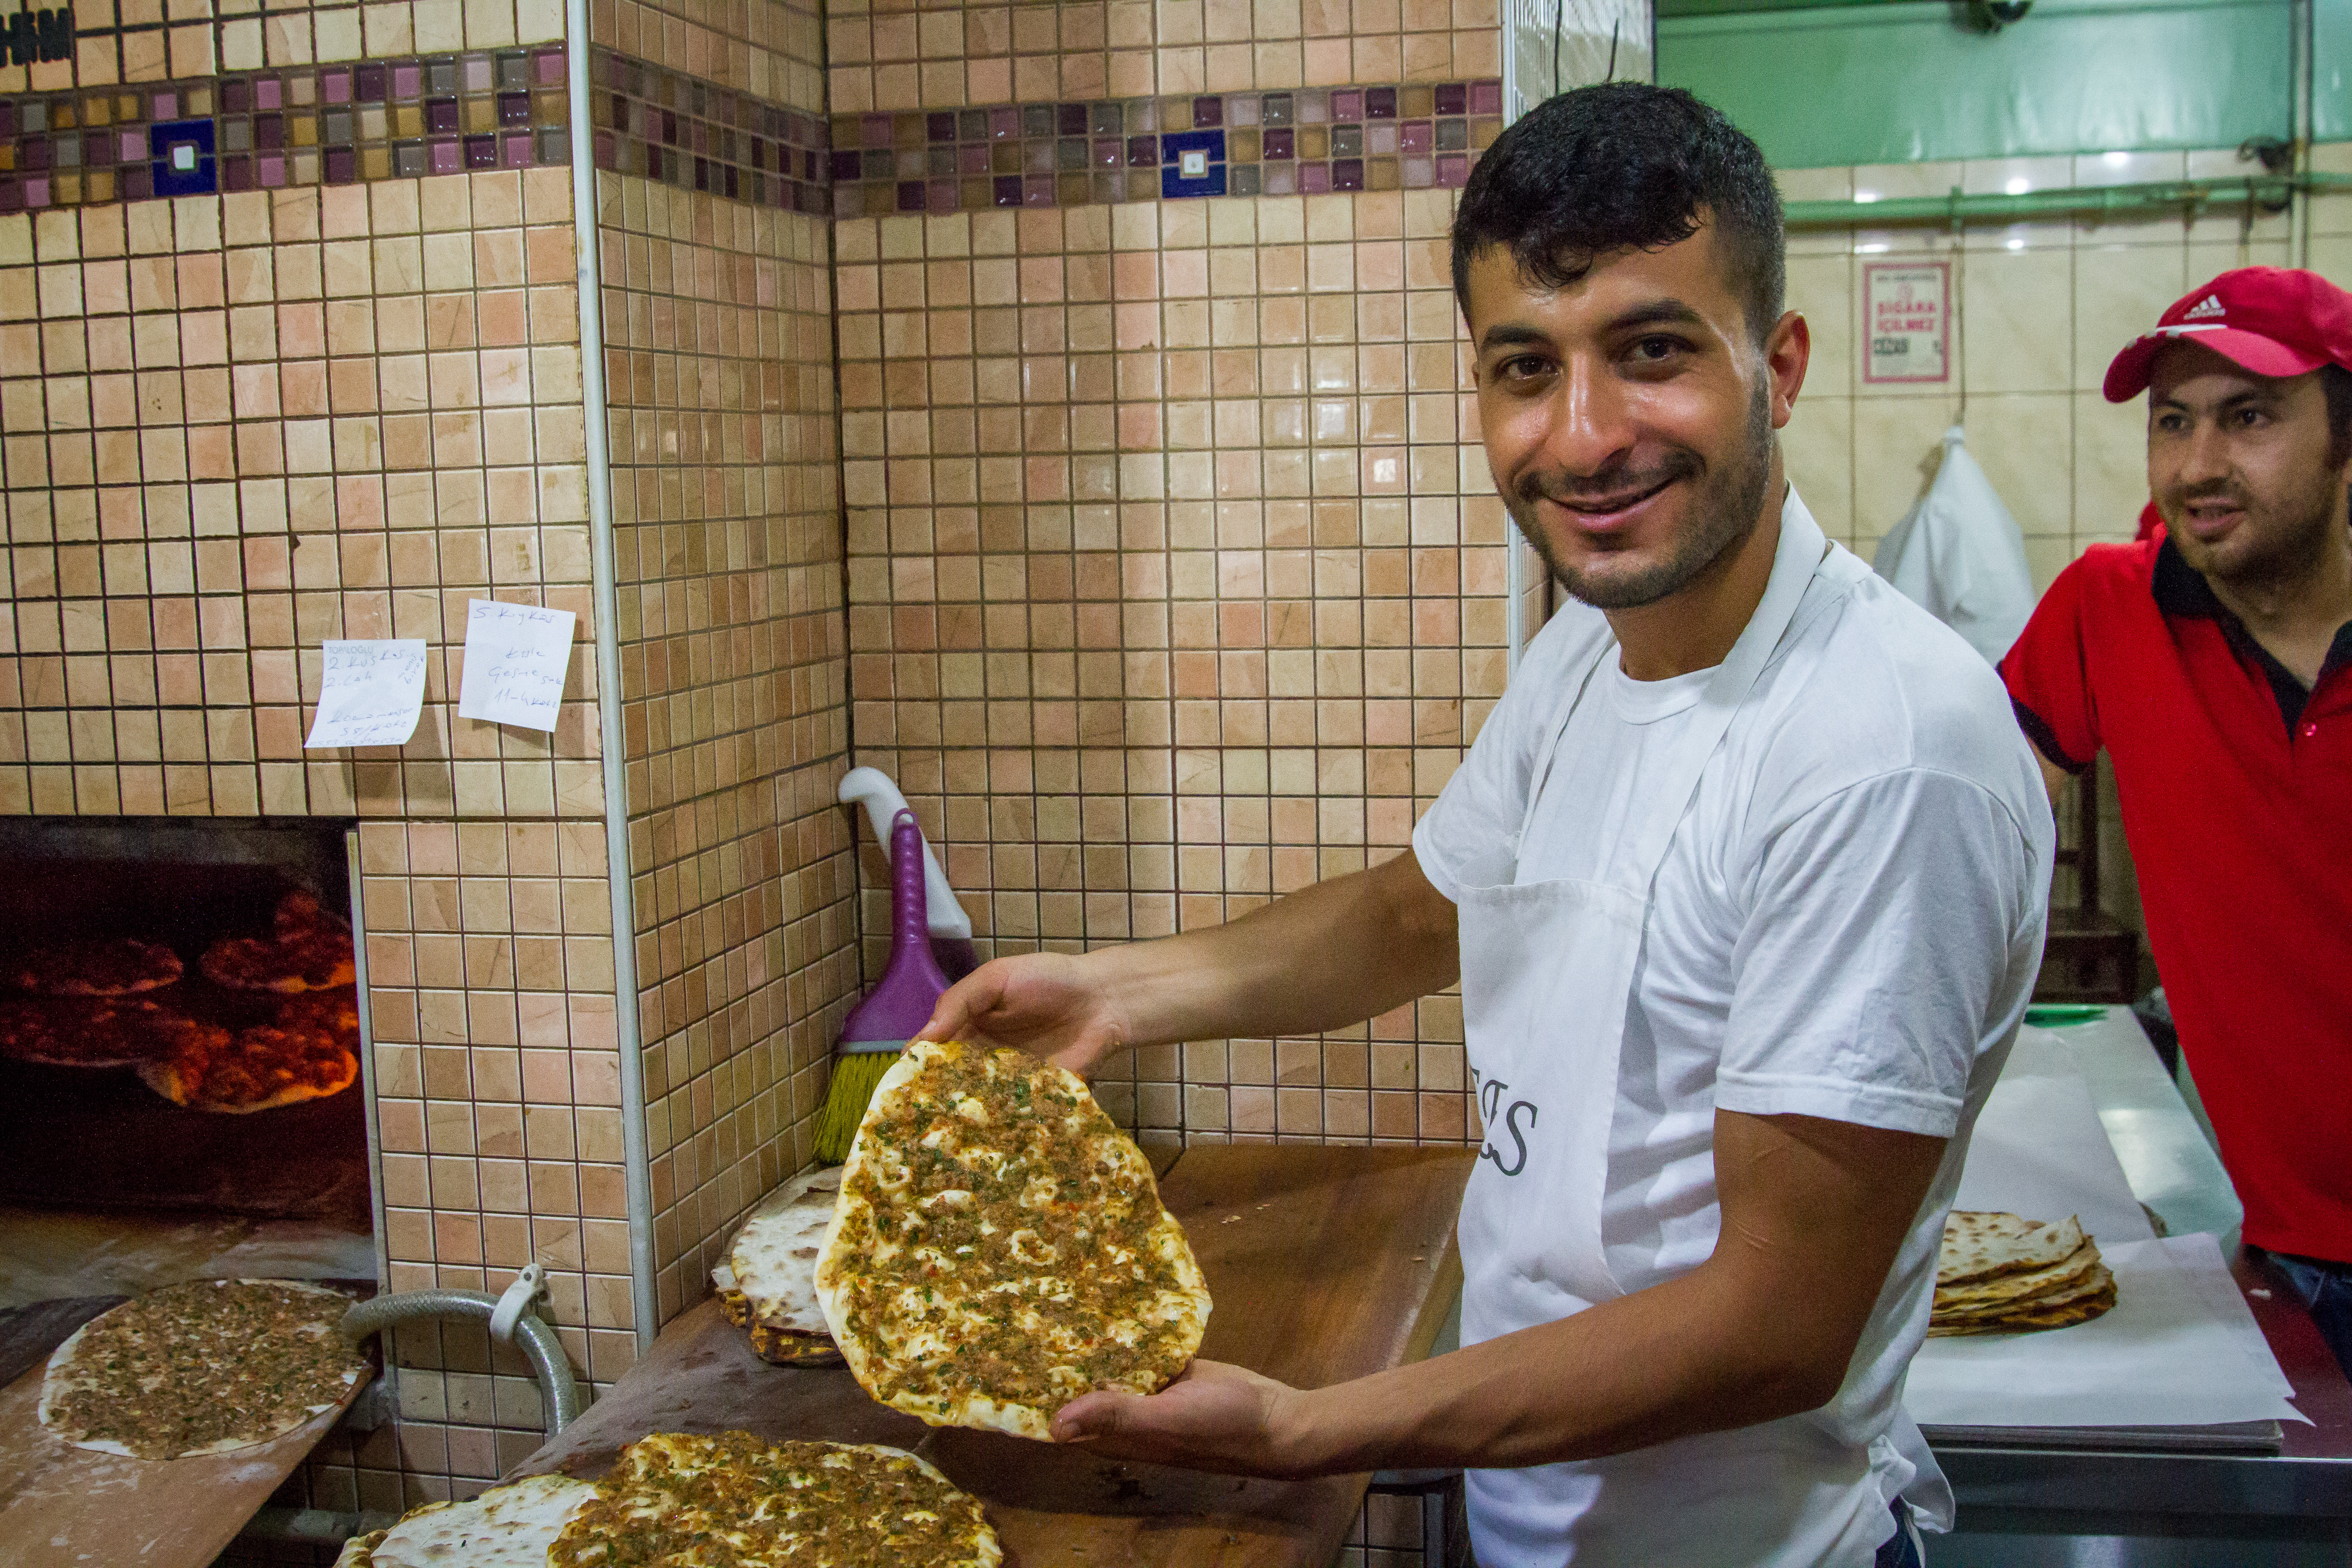 """Lahmacun Vendor in Istanbul Turkey"" by Erick Prince via Minority Nomad"